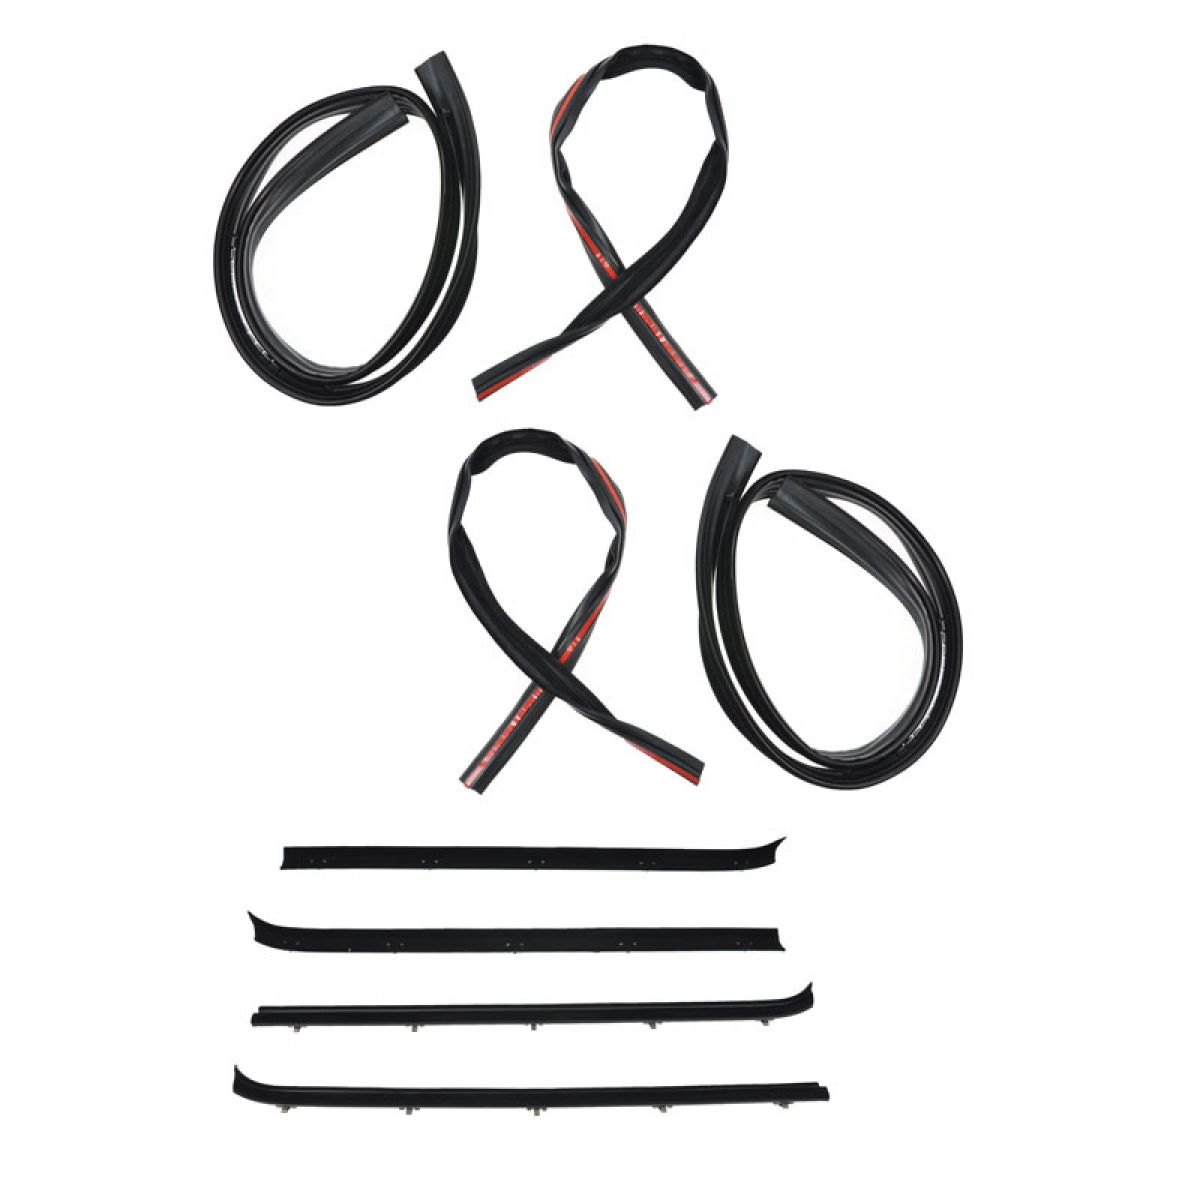 Window Sweep & Run Channel Weatherstrip Set of 8 Kit for